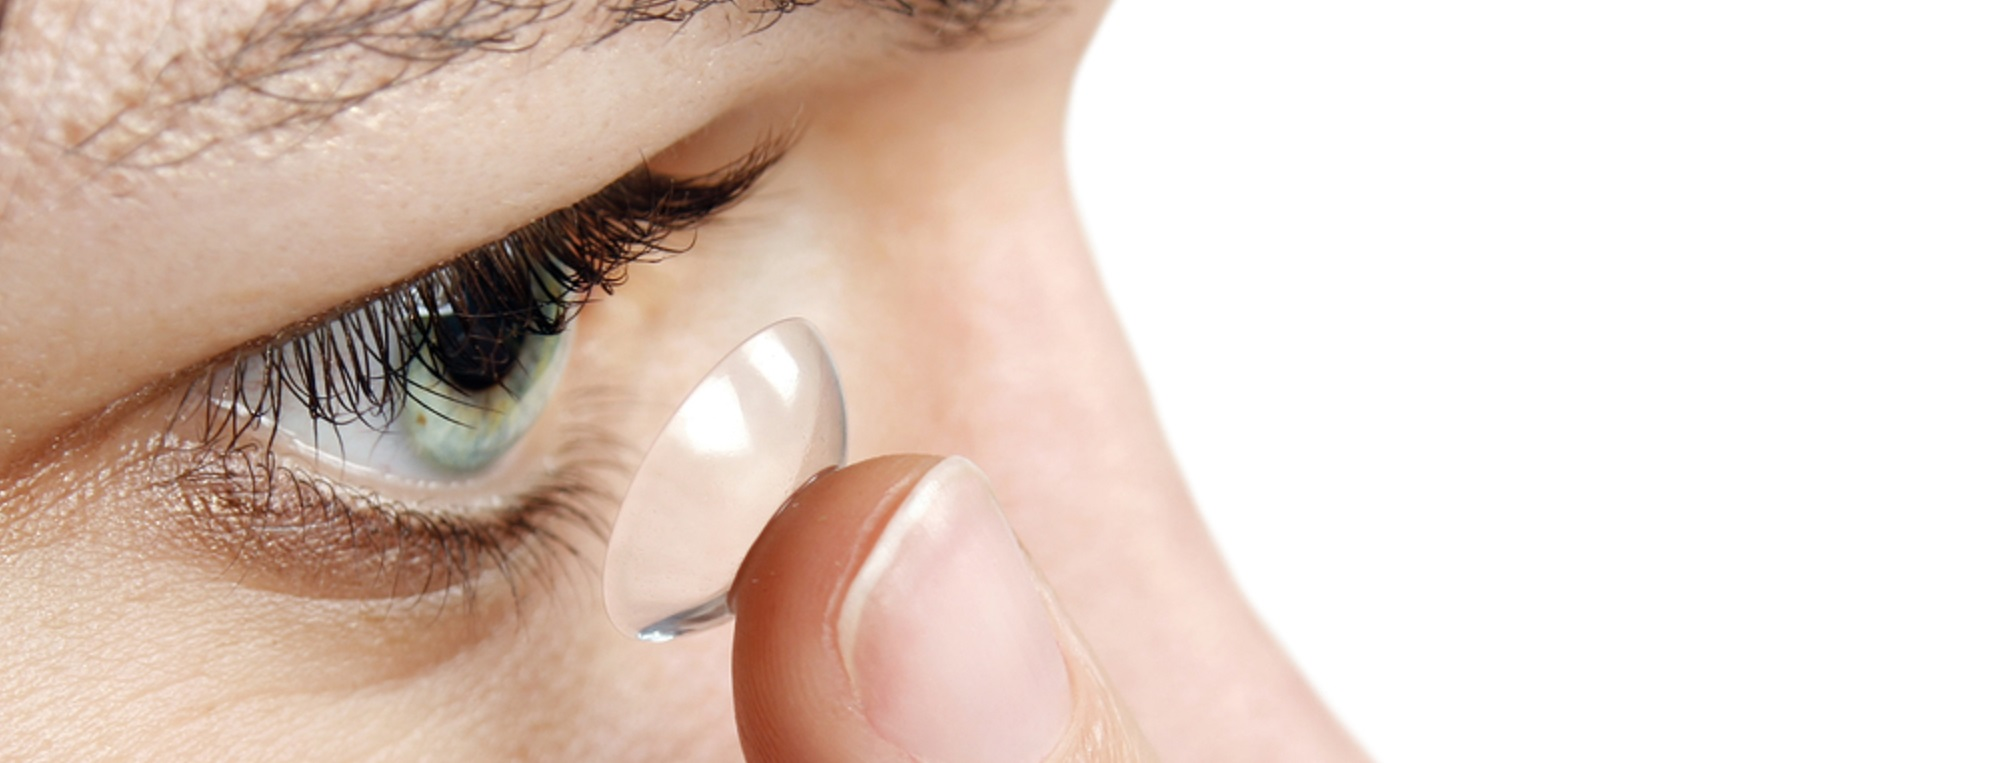 Someone putting a contact lens into their eye